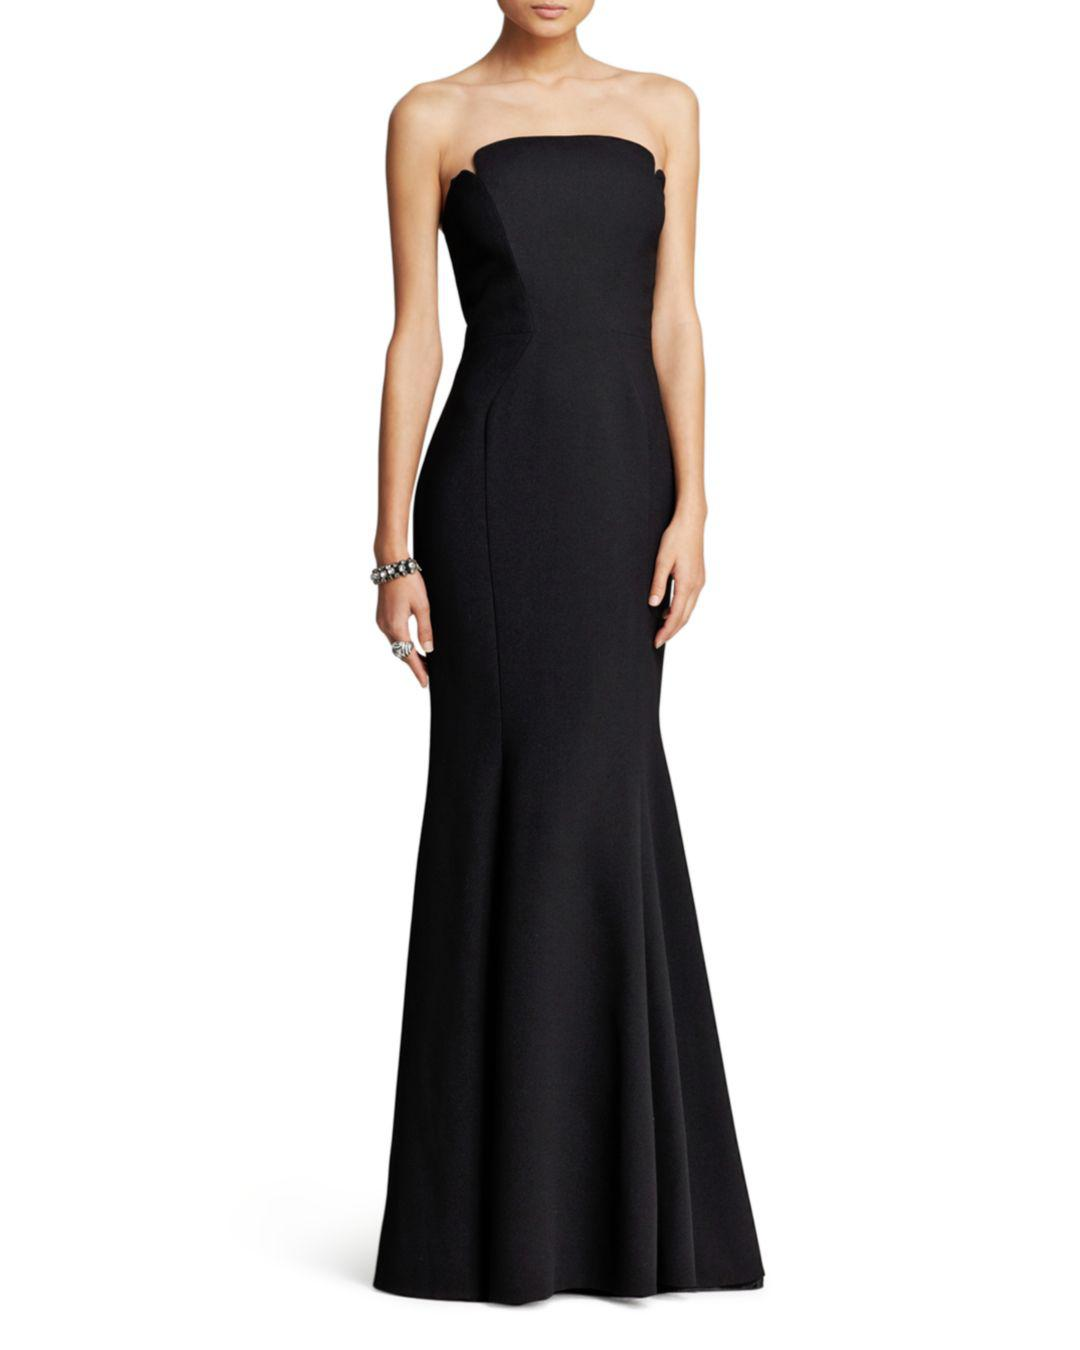 Glamour Gowns Tagged Size S The Deco Haus: JILL Jill Stuart Deco Neckline Strapless Gown In Black